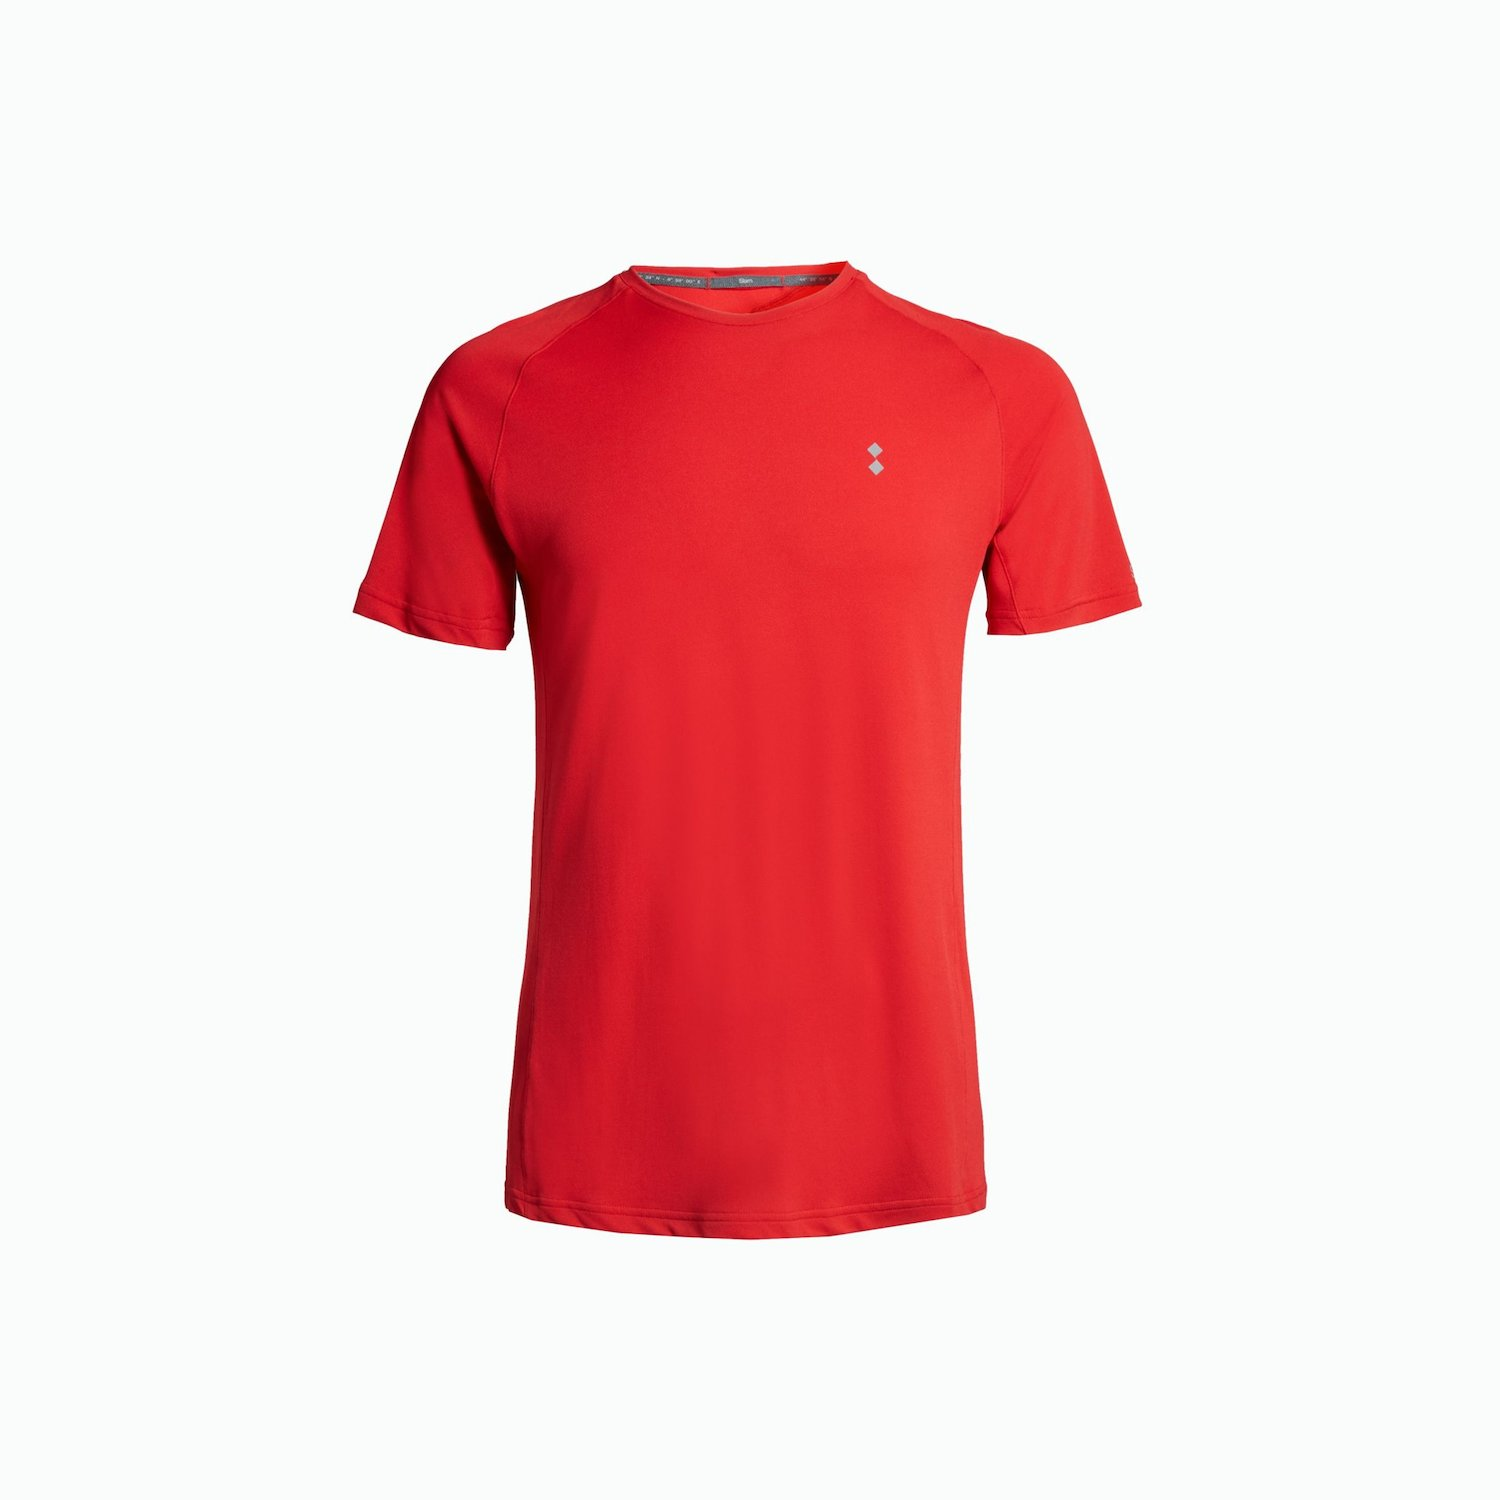 T-SHIRT A151 - Slam Red